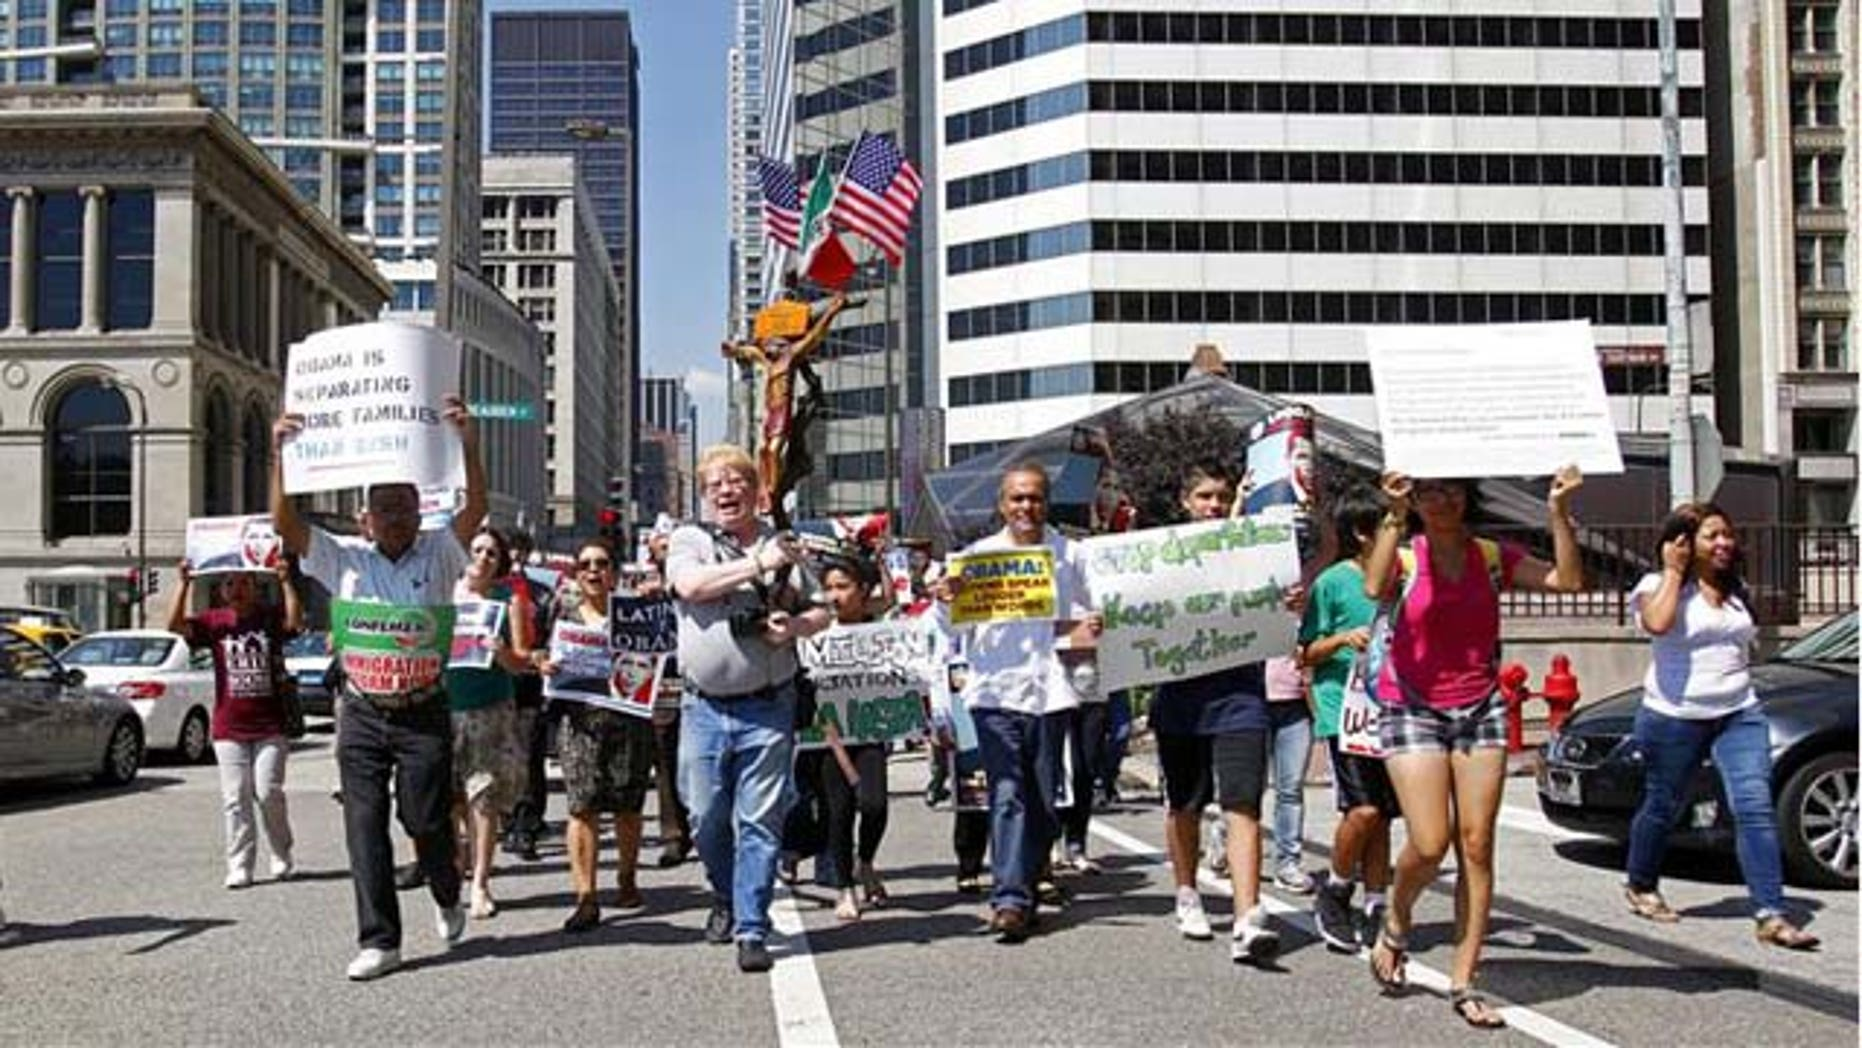 Pro-immigration reform activists protested on Tuesday in front of President Barack Obama's Chicago reelection campaign headquarters.